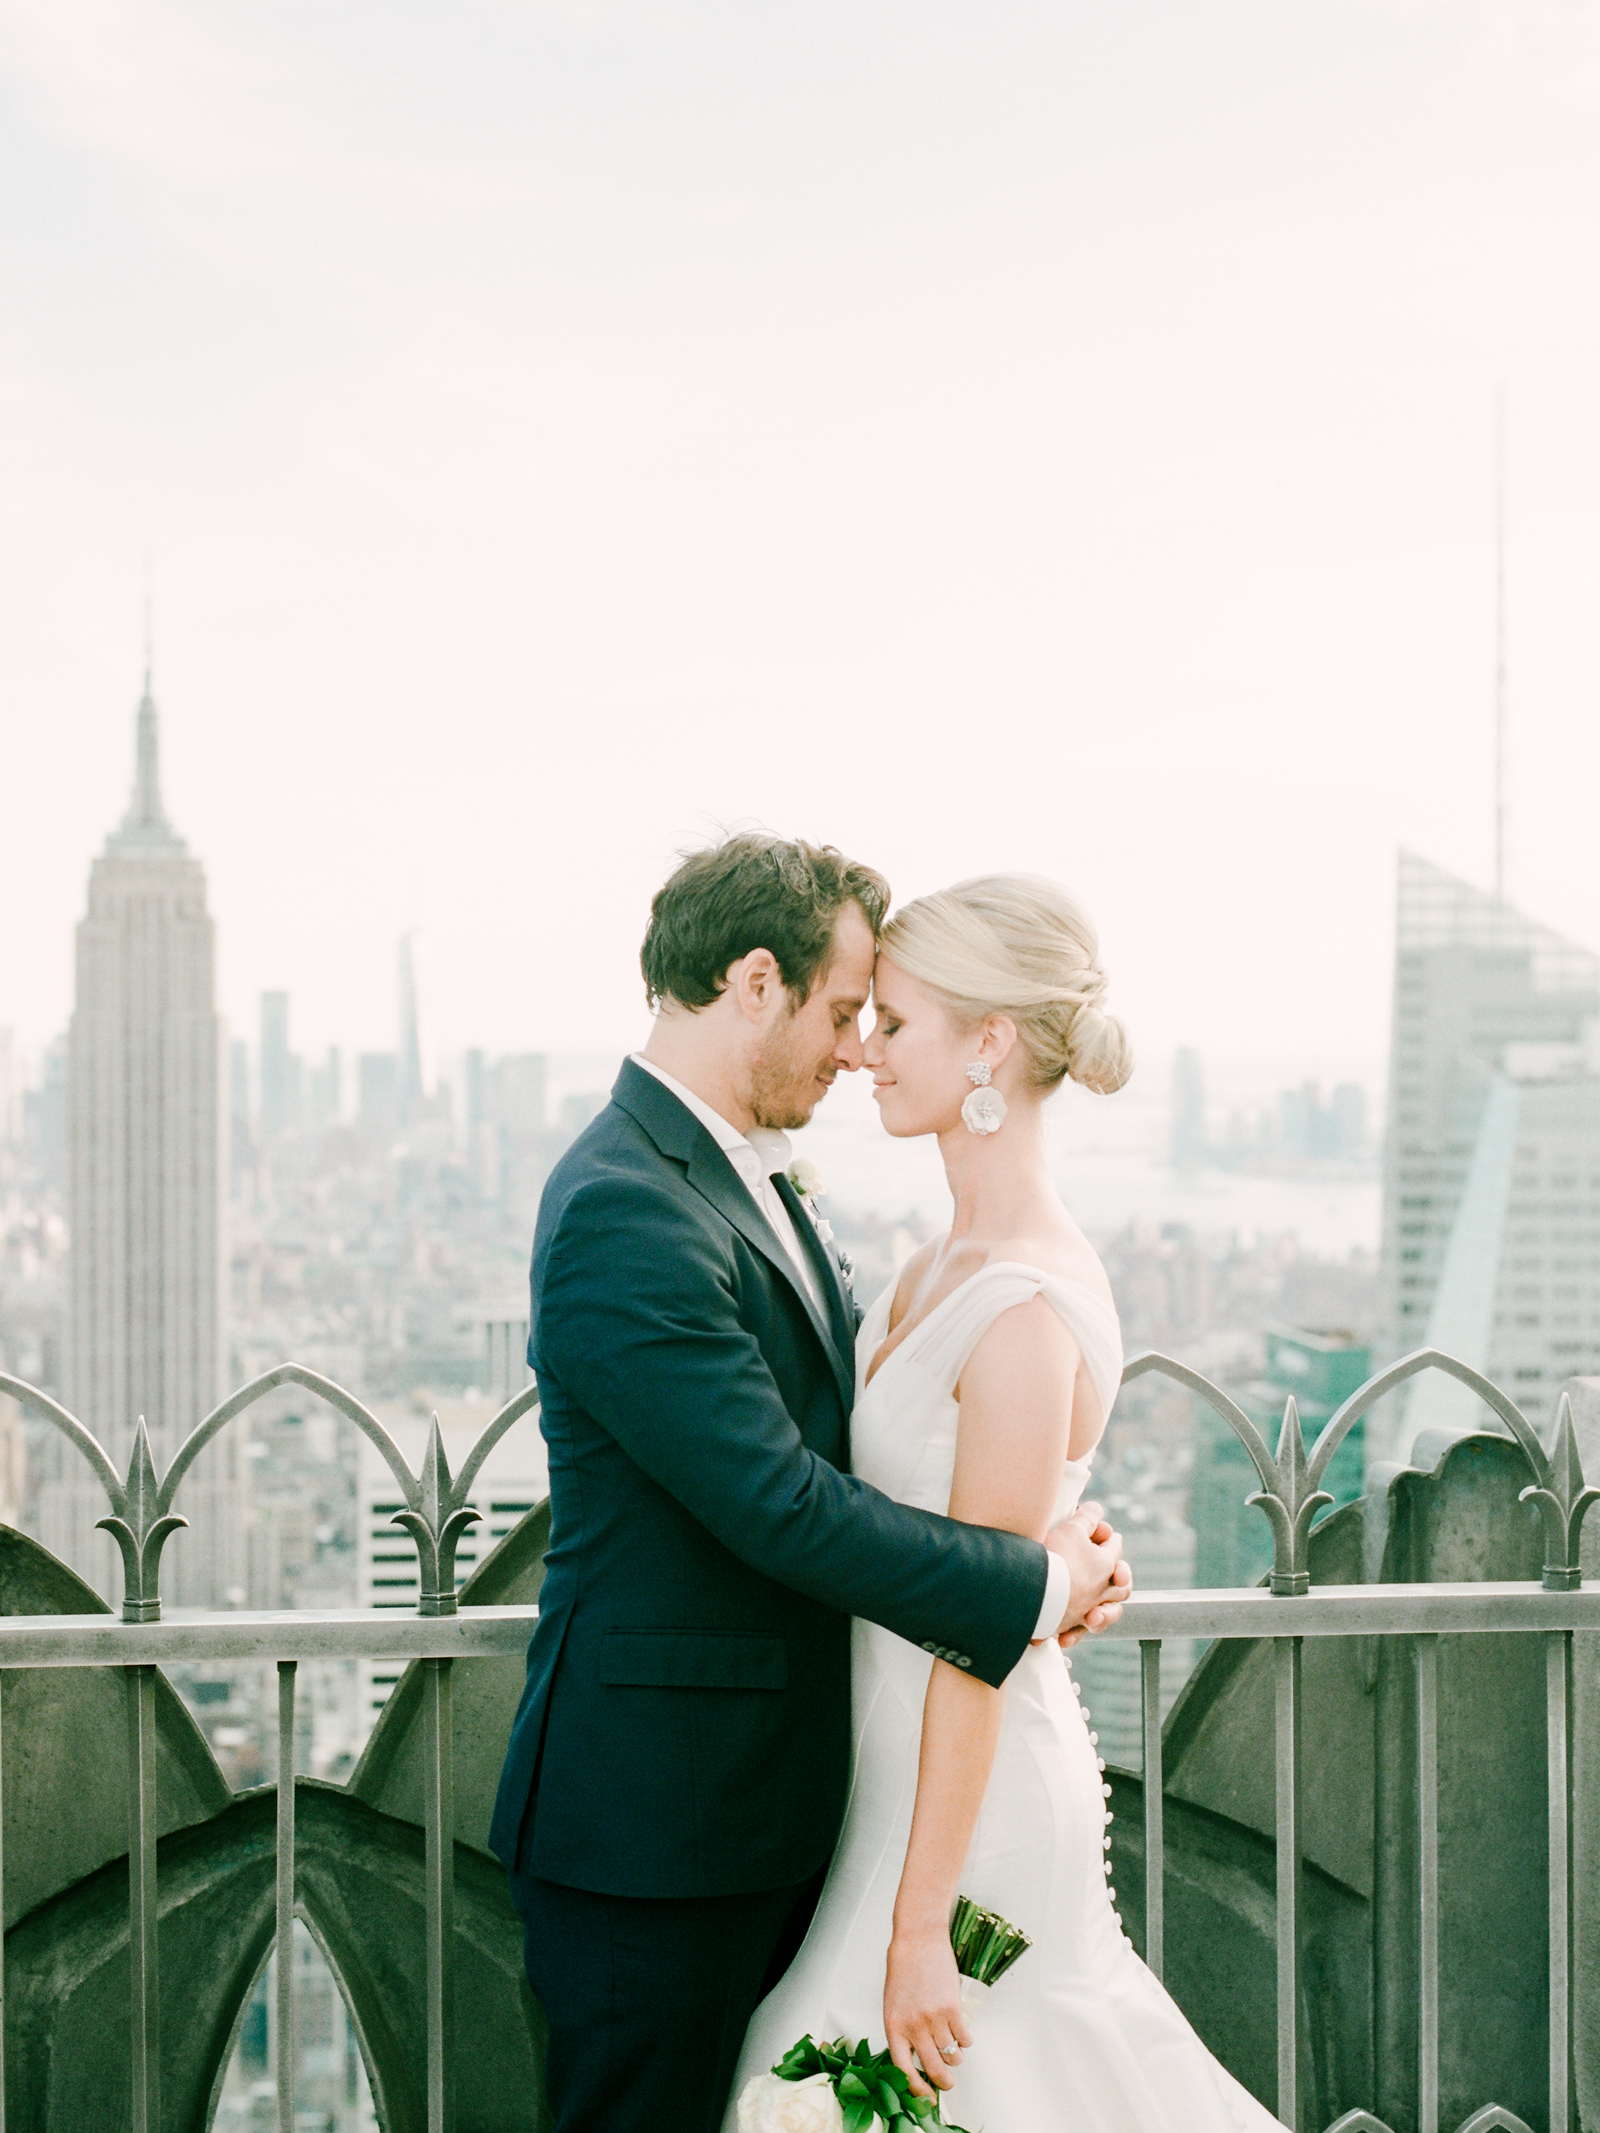 Intimate-NYC_wedding_ by Tanya Isaeva-154.jpg